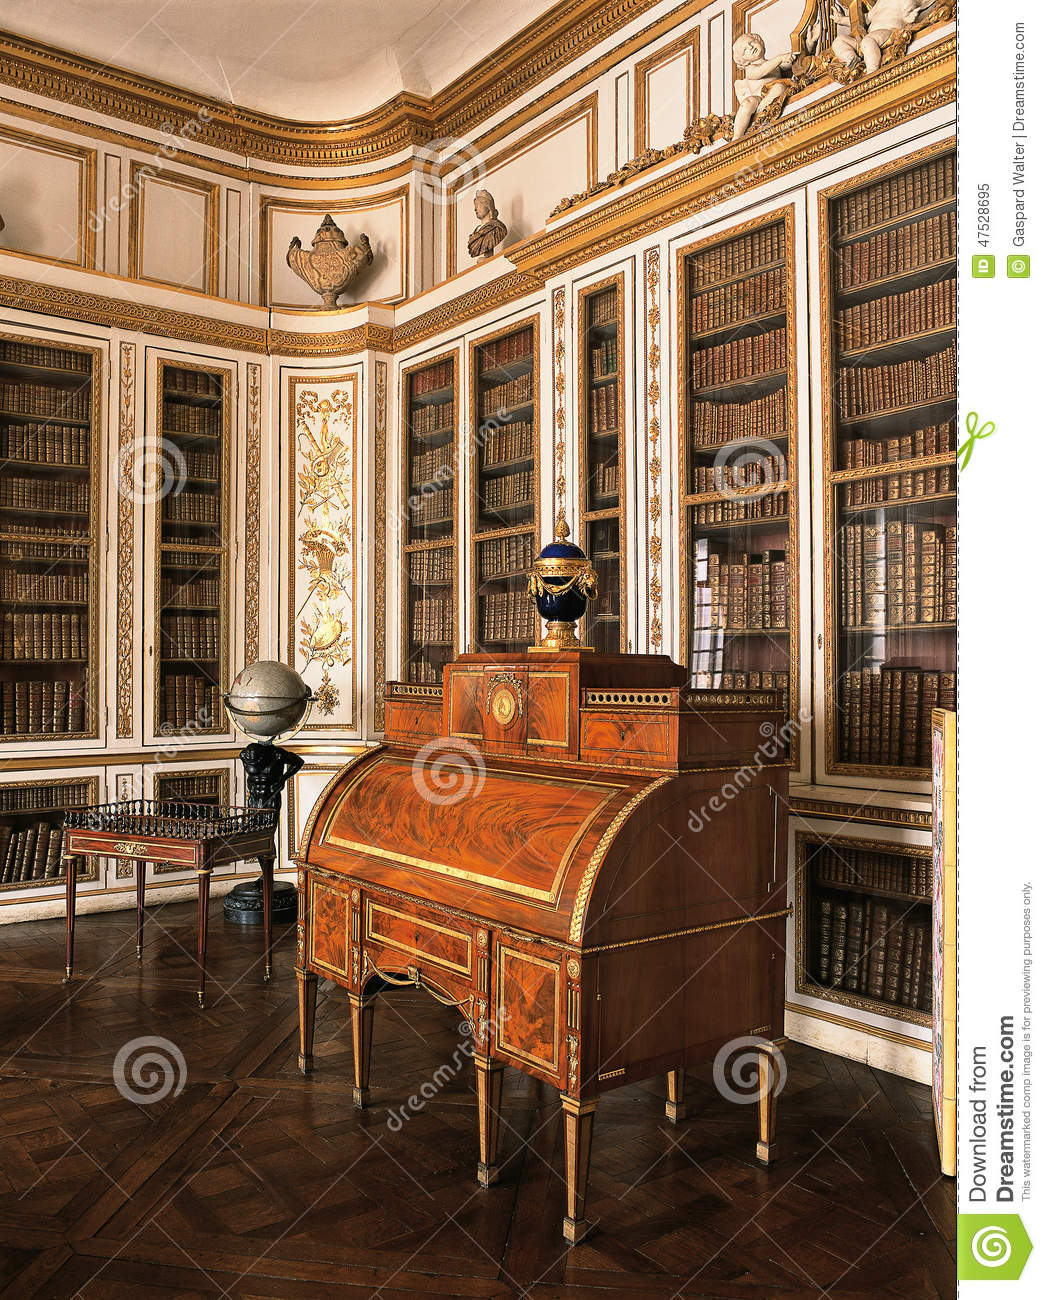 Muebles Palacios Wooden Room With Furniture At Versailles Palace Editorial